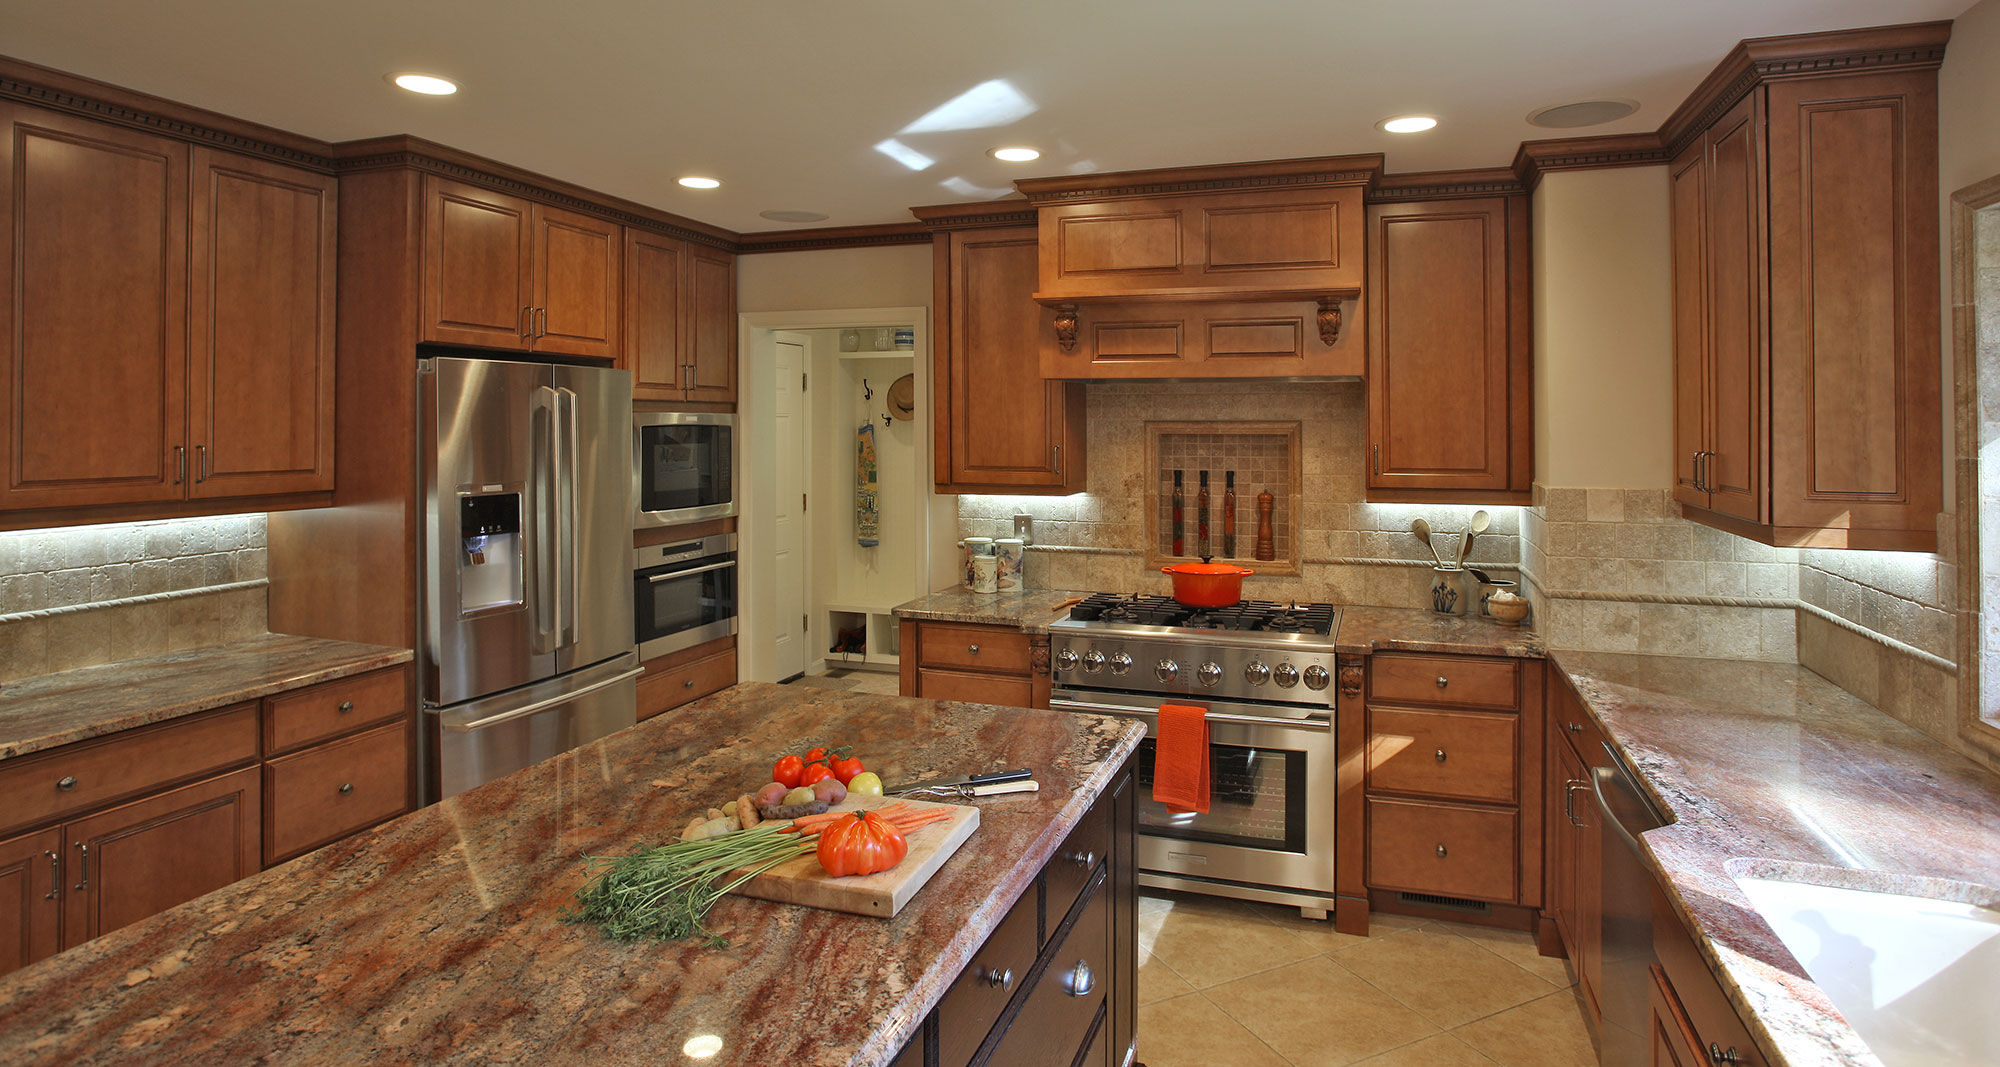 Kitchen And Bath Remodeling Serving Northern Virginia, Maryland, Washington  D.C. | Kingston Design Remodeling